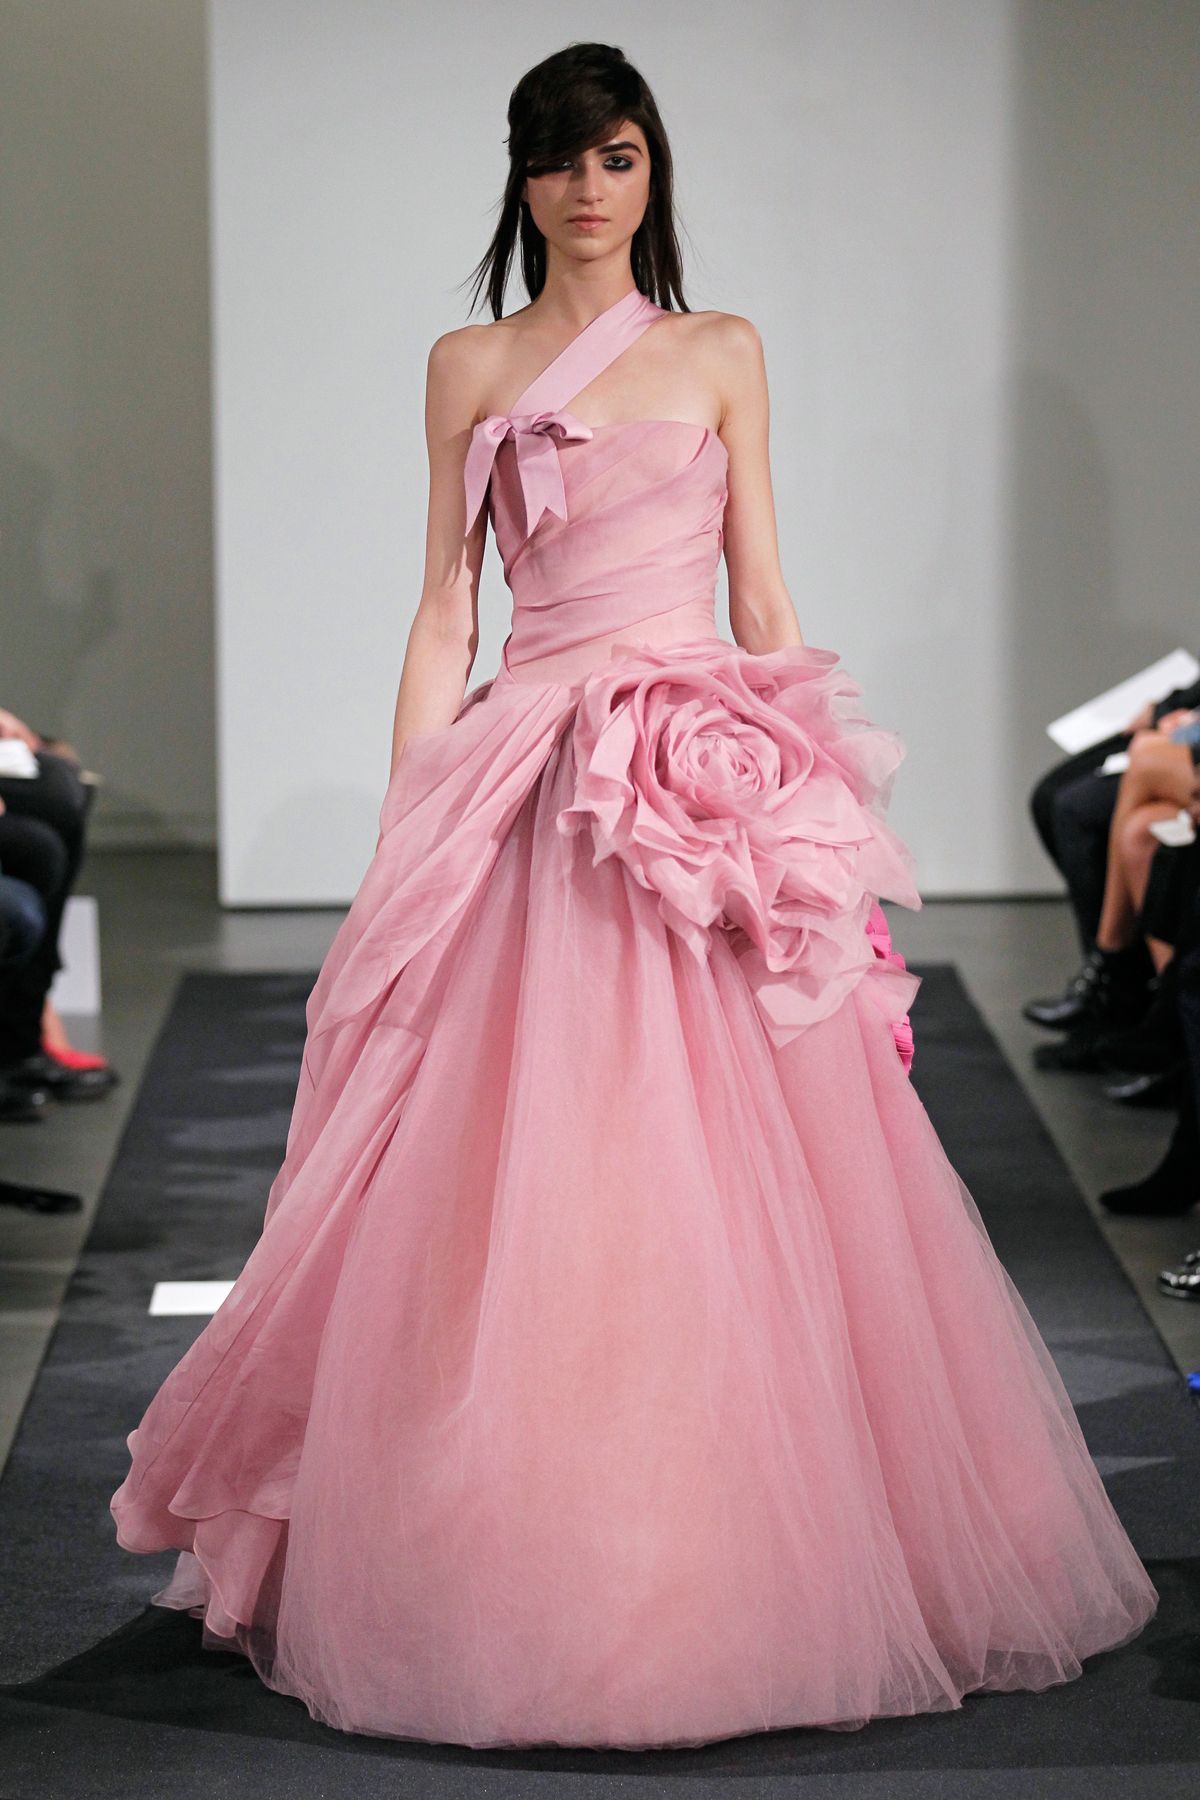 Vera Wang | My Vision Board | Pinterest | Damitas de honor, Damas y ...